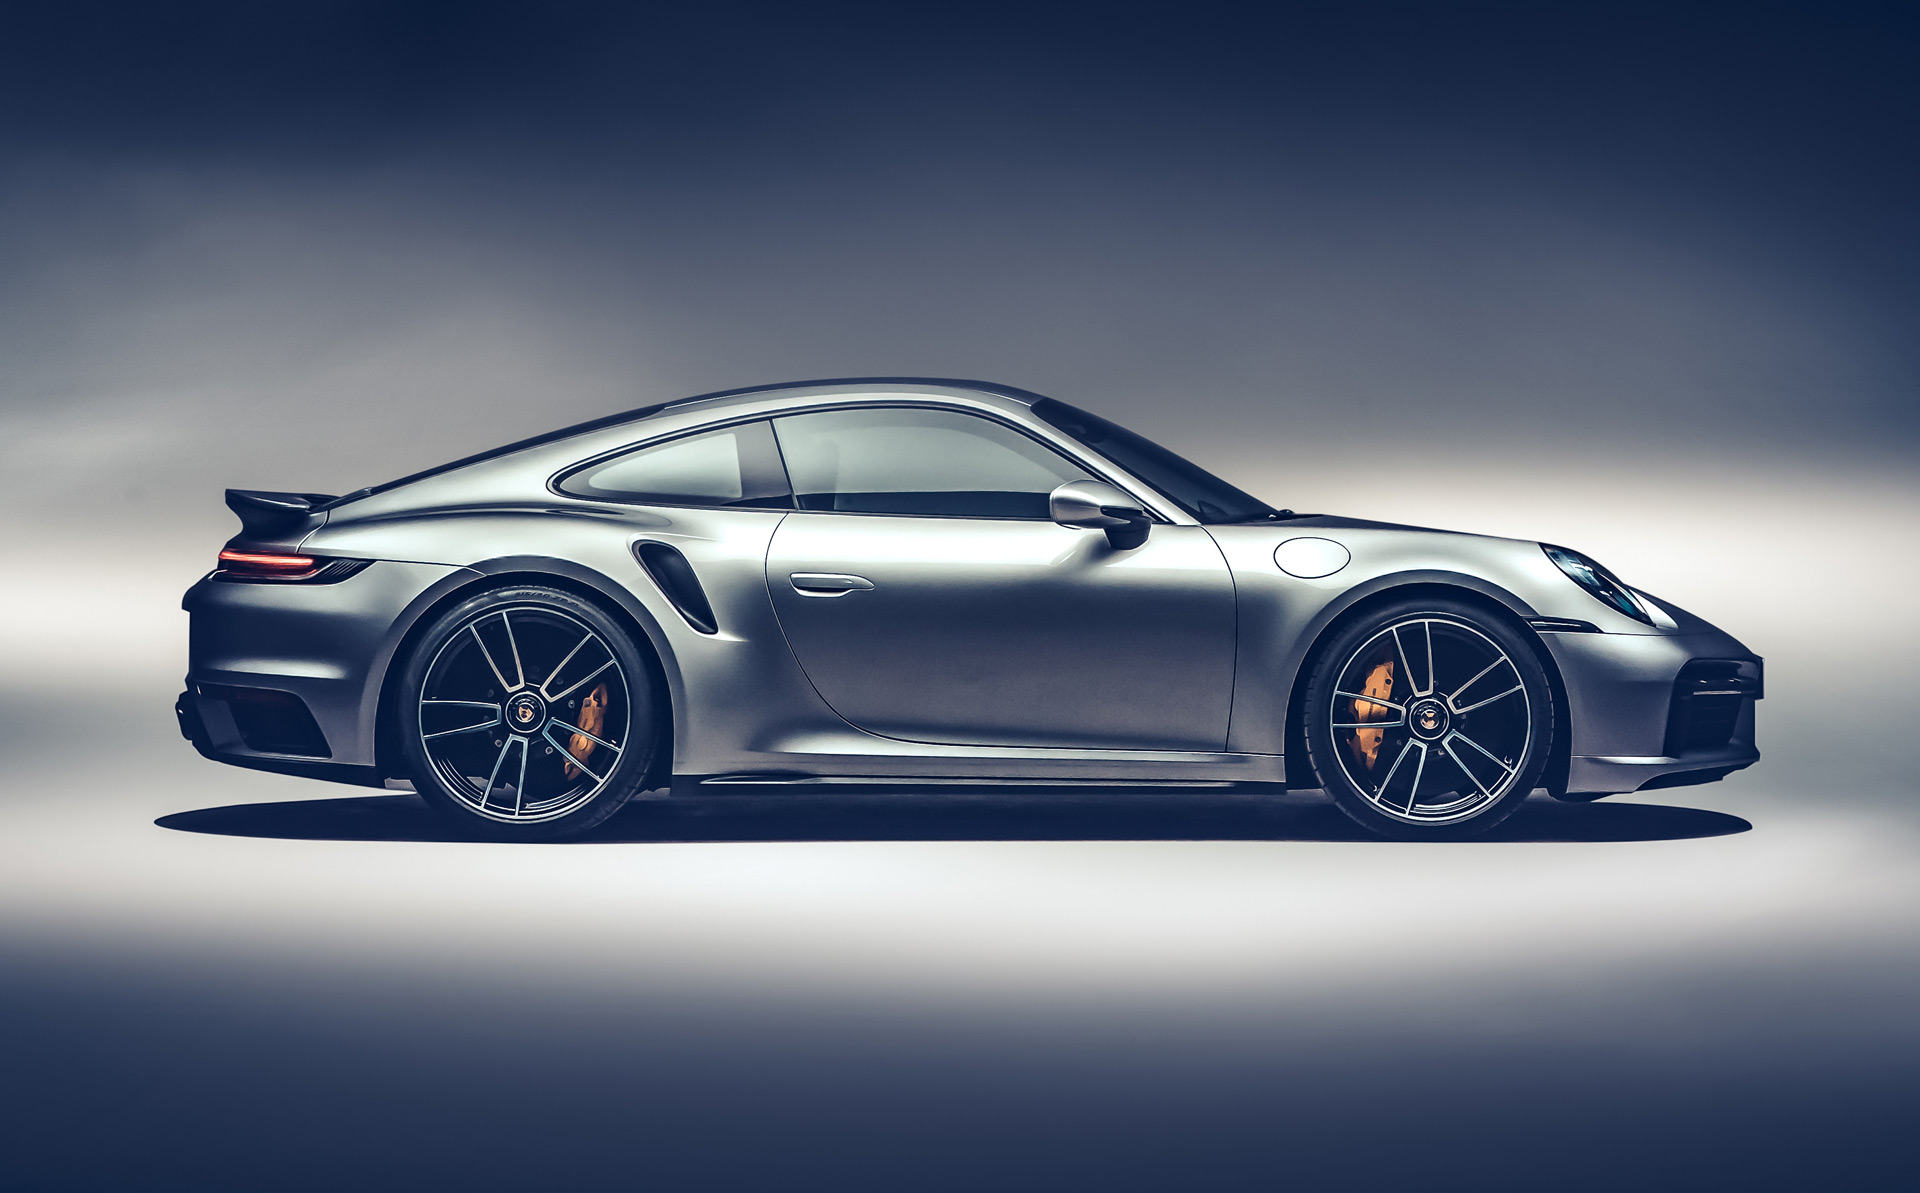 Porsche readies Lightweight and Sport packages for the 2021 911 Turbo S